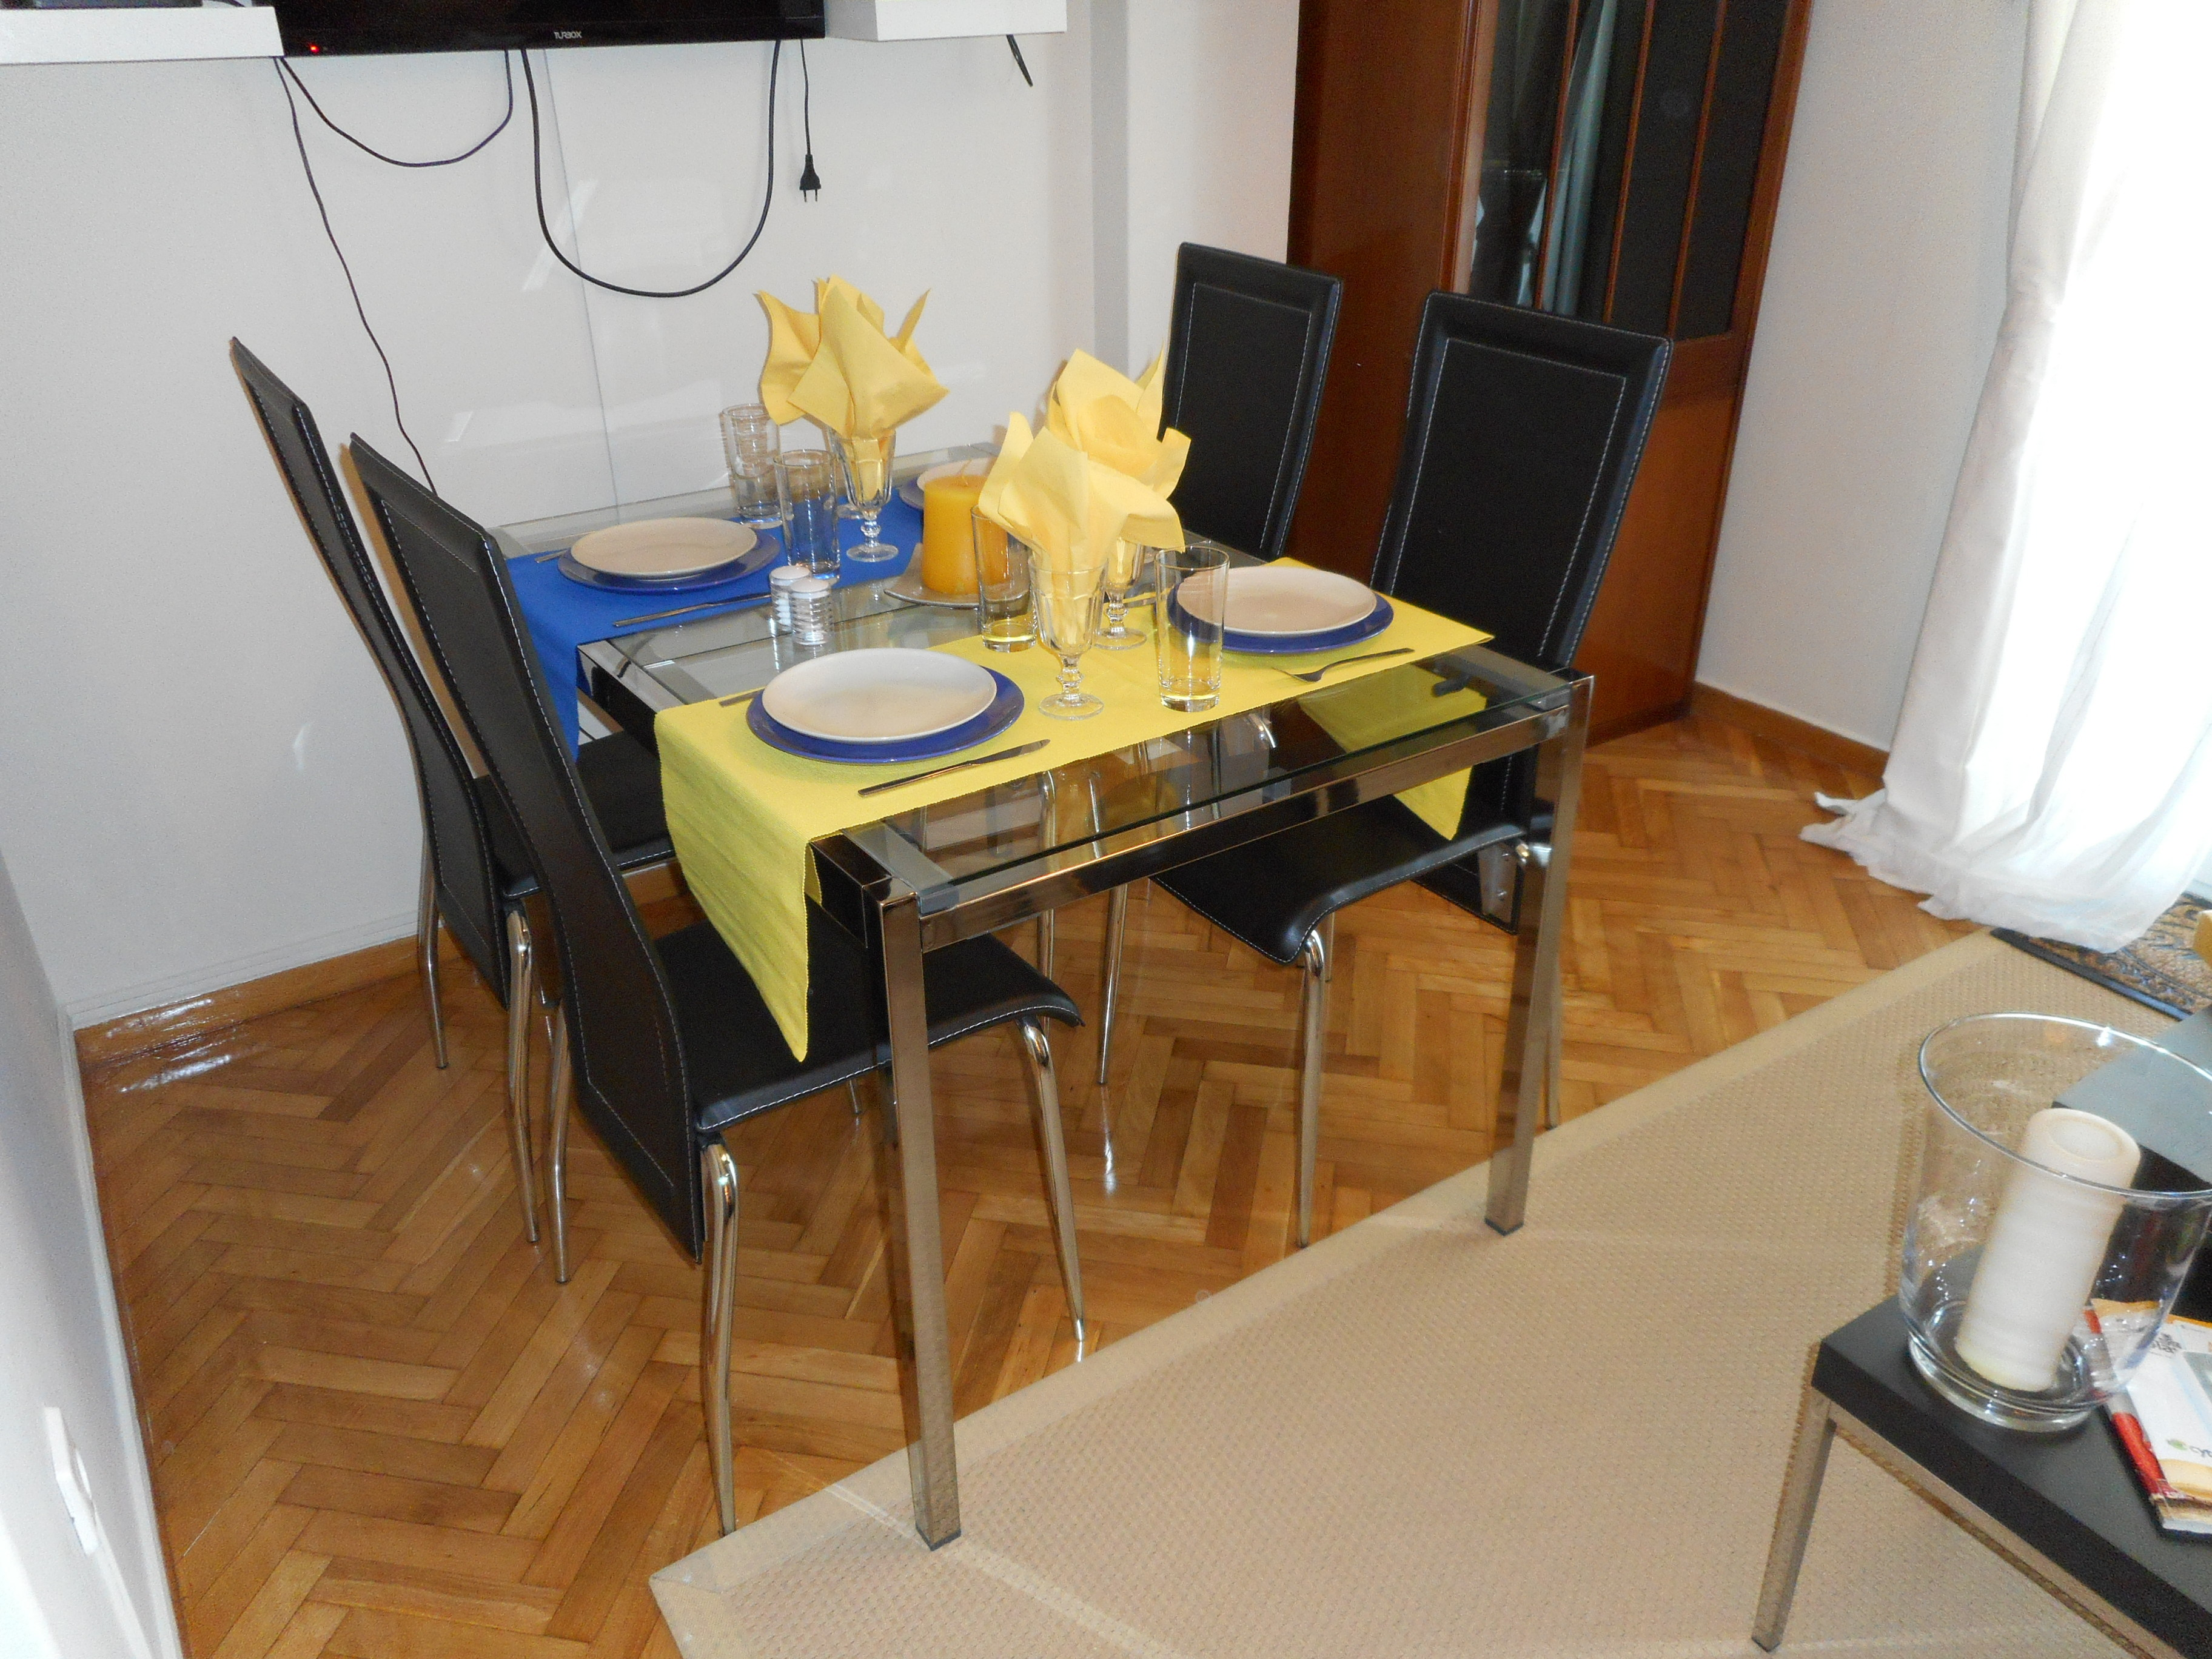 Ultracareapartments - Athens - City Center - 1 Bedroom Apartment photo 21795758